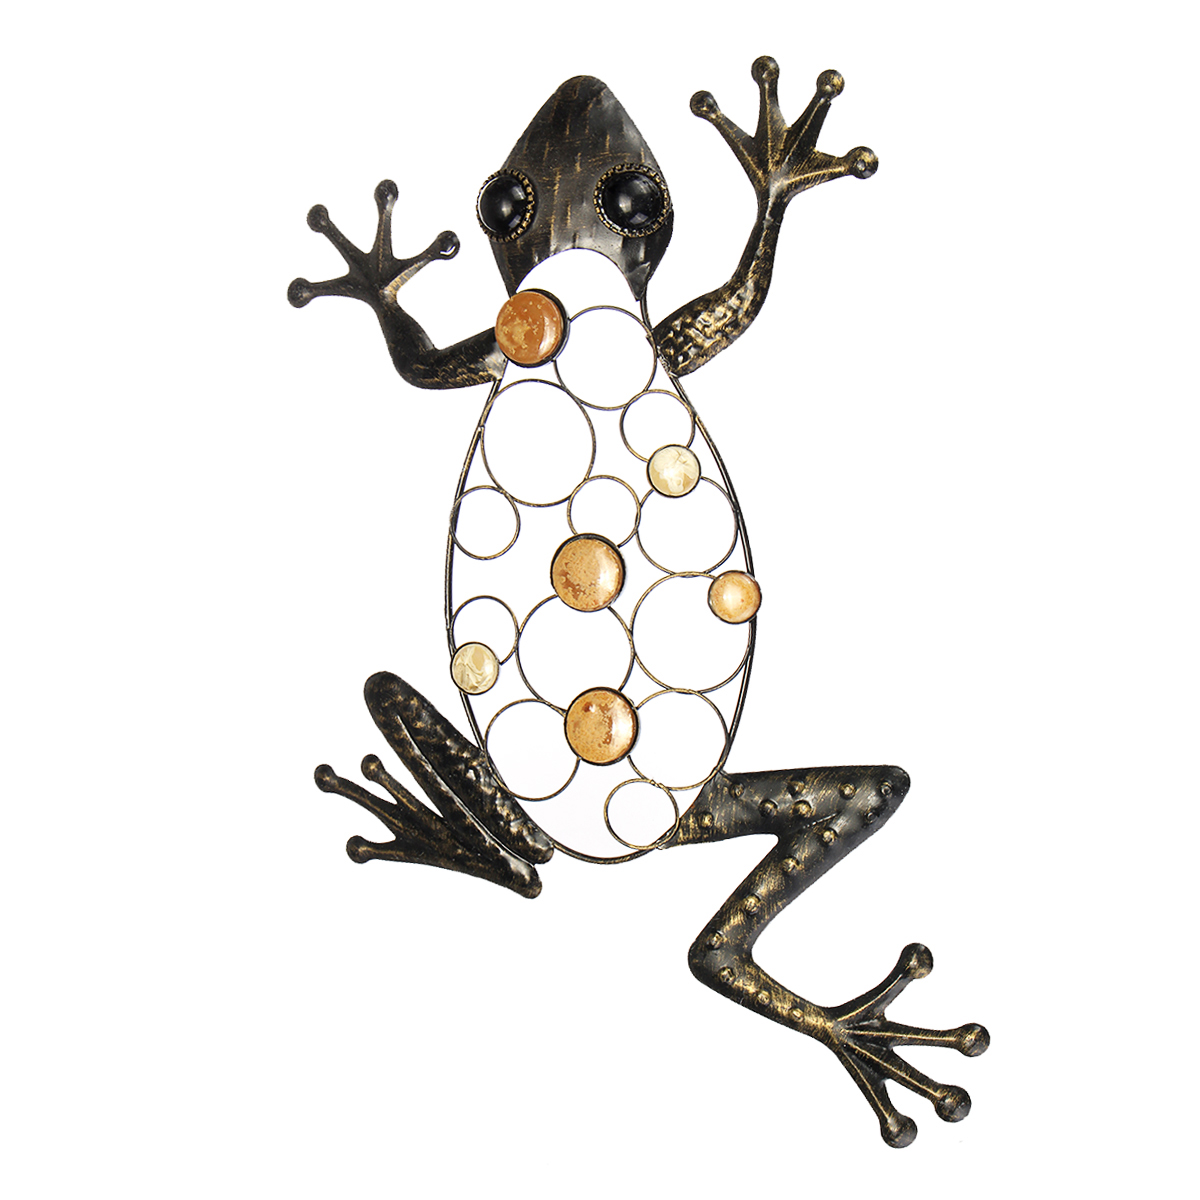 Frog Iron Metal Craft Garden Hanging Wall Art Ornament Mounted Home Decorations